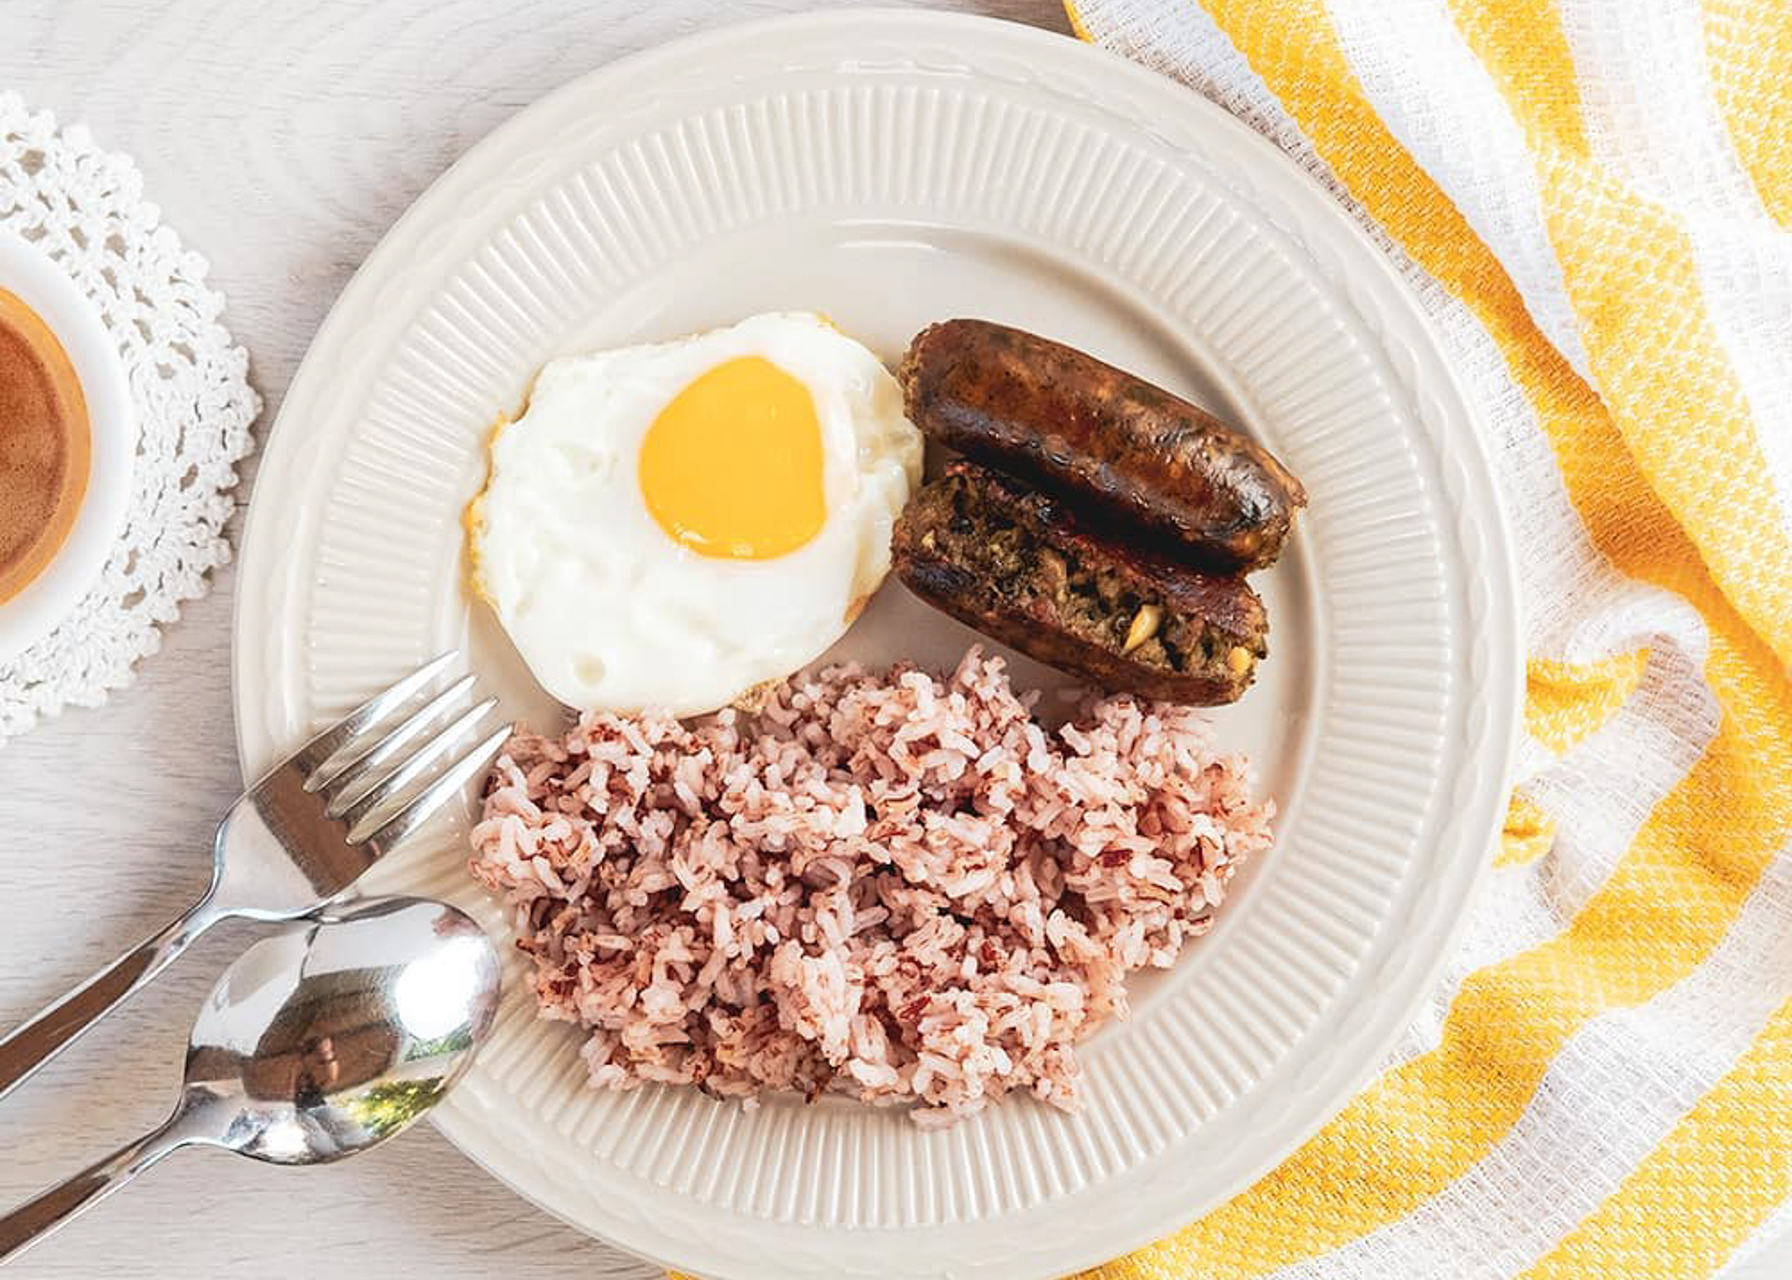 Laing Longganisa Exists and We Know Where You Can Order It!